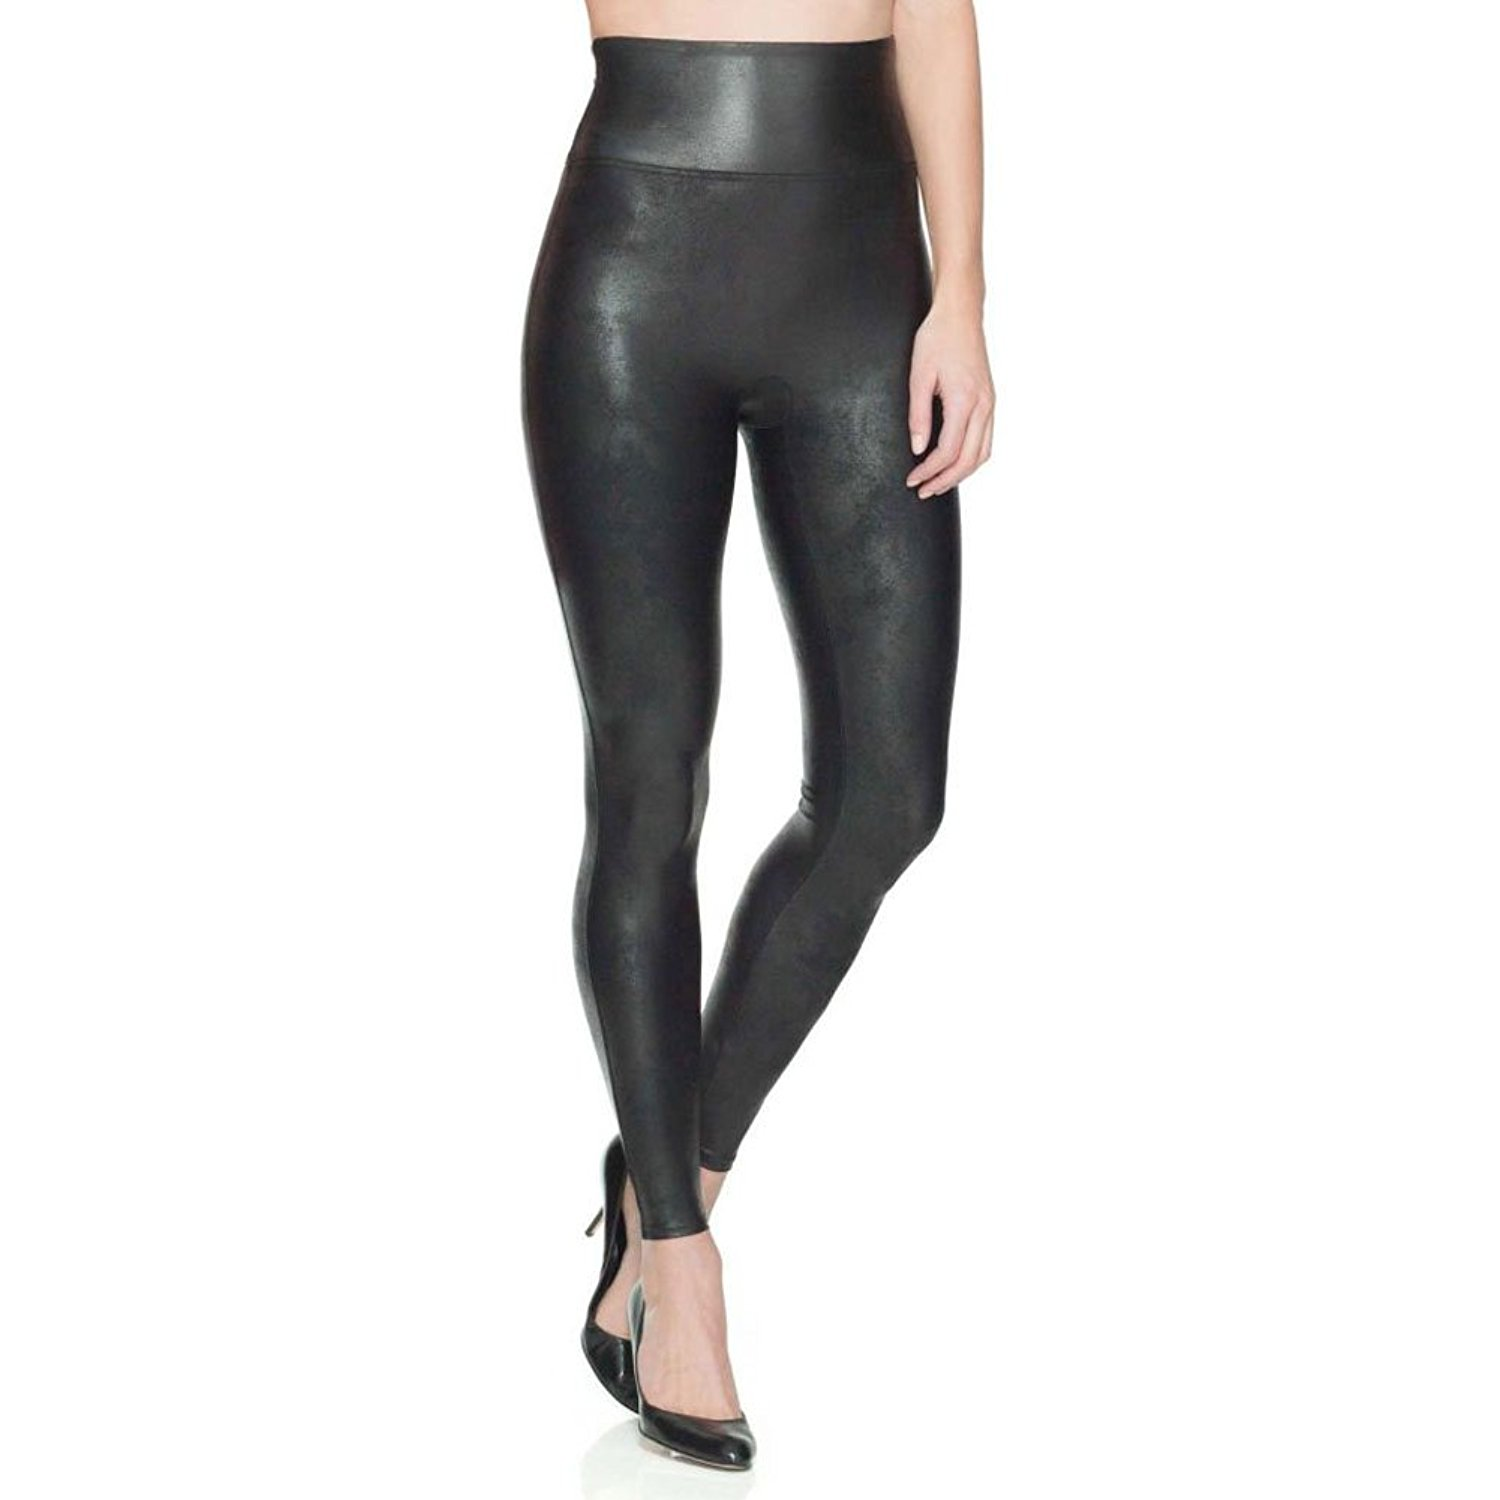 SPANX Women's Faux Leather Leggings at Amazon Women's Clothing store: